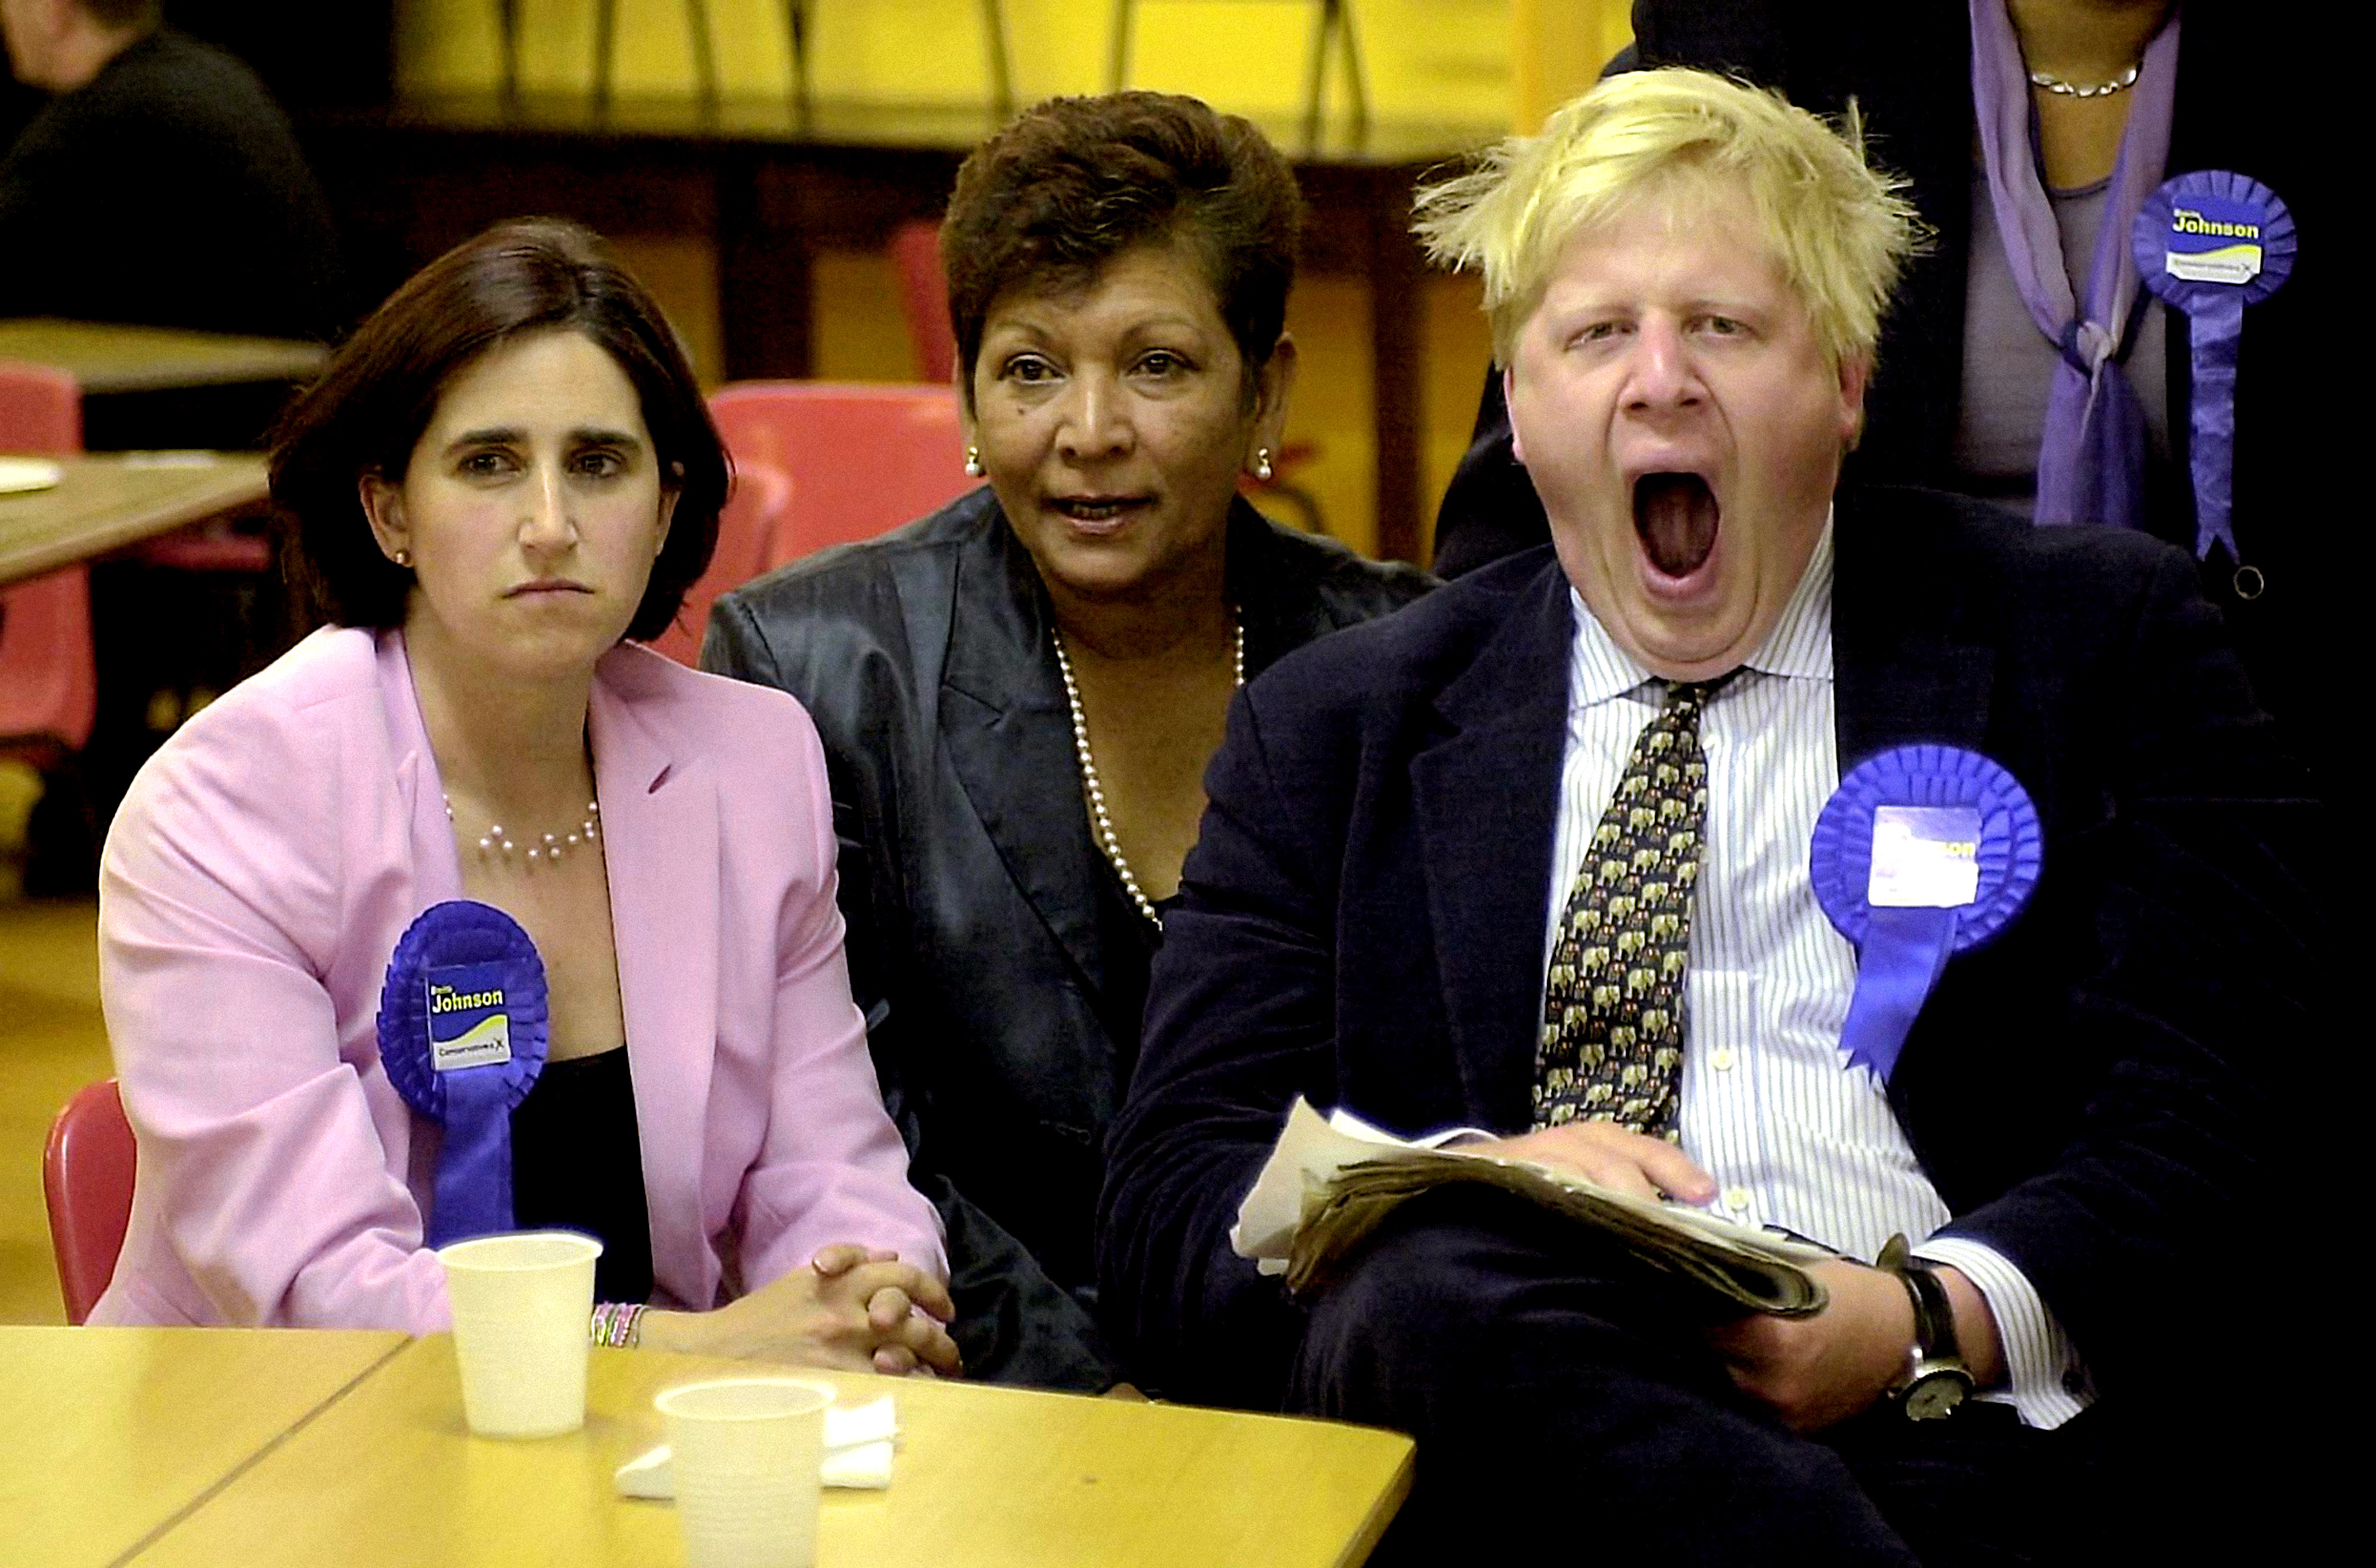 Journalist Boris Johnson yawns while watching the election results in the early hours of the morning with his wife Marina (L), at the count in Watlington, Oxfordshire, after winning the Henley seat for the Conservatives.  * ...in the 2001 General Election. The seat was Michael Heseltine's, who has stepped down at this election.